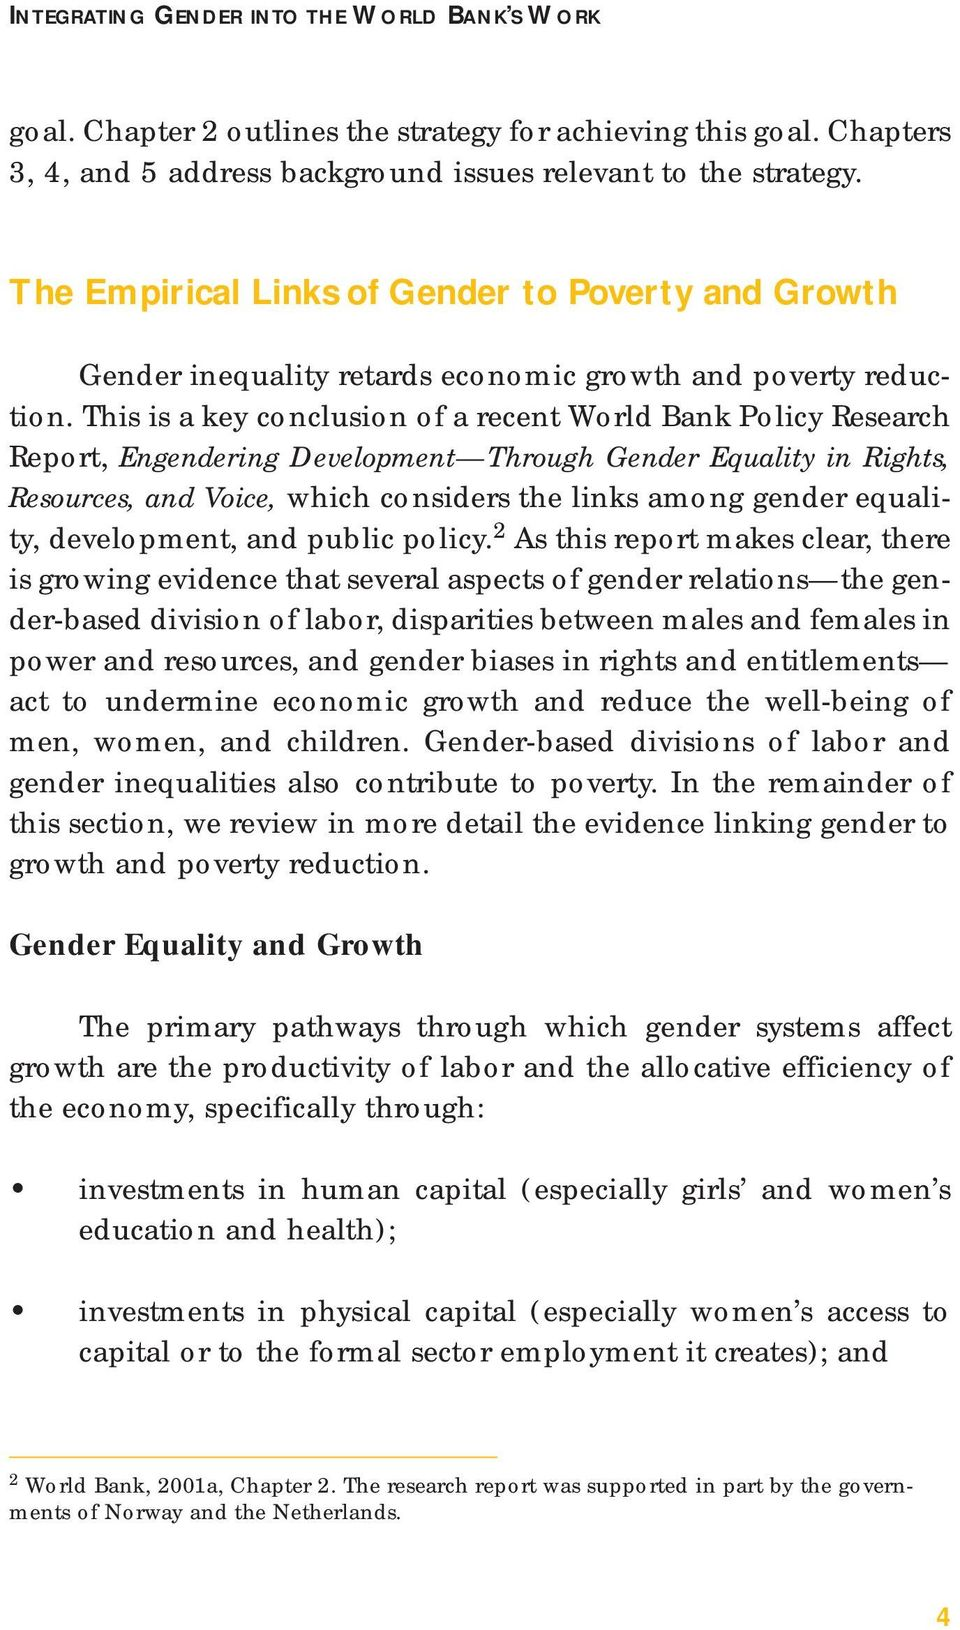 This is a key conclusion of a recent World Bank Policy Research Report, Engendering Development Through Gender Equality in Rights, Resources, and Voice, which considers the links among gender